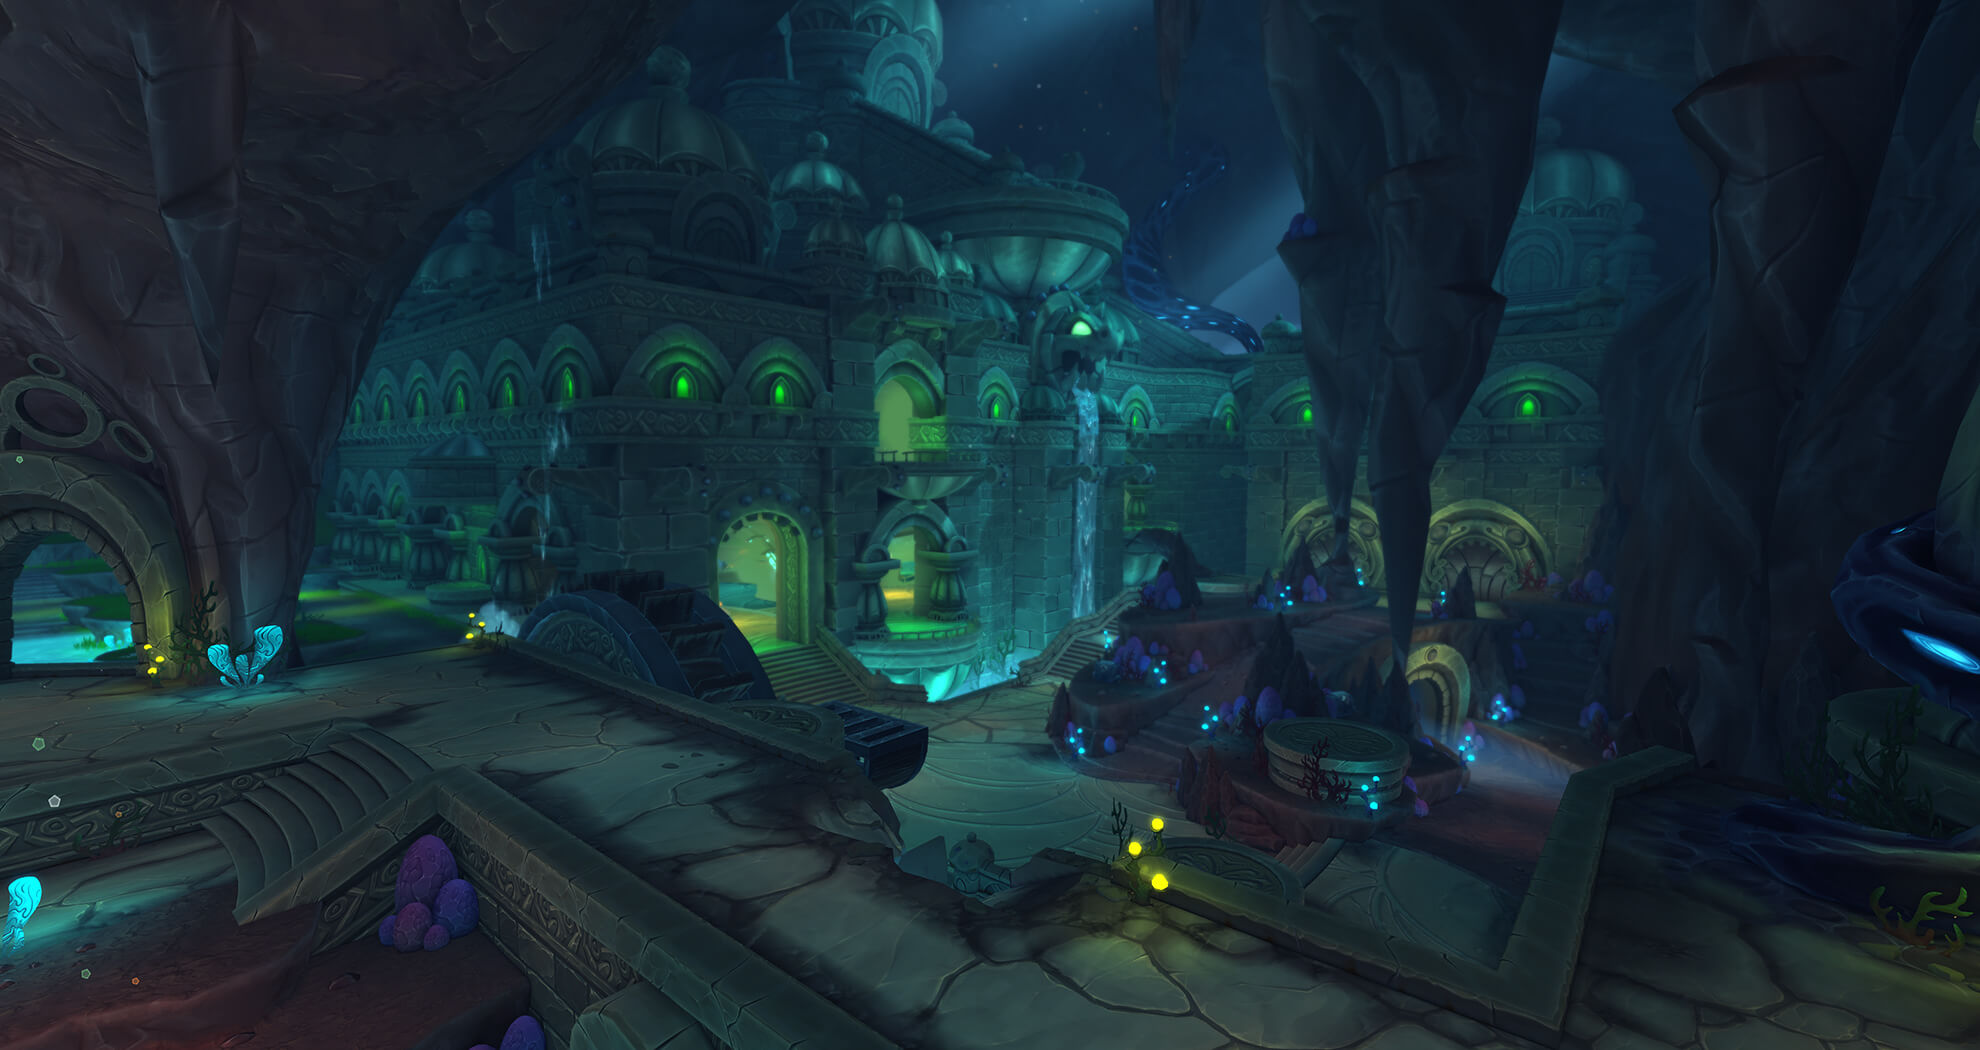 Dungeon defenders ii power of the ancients expansion available now for free on xbox one blogdottv - Dungeon defenders 2 console ...